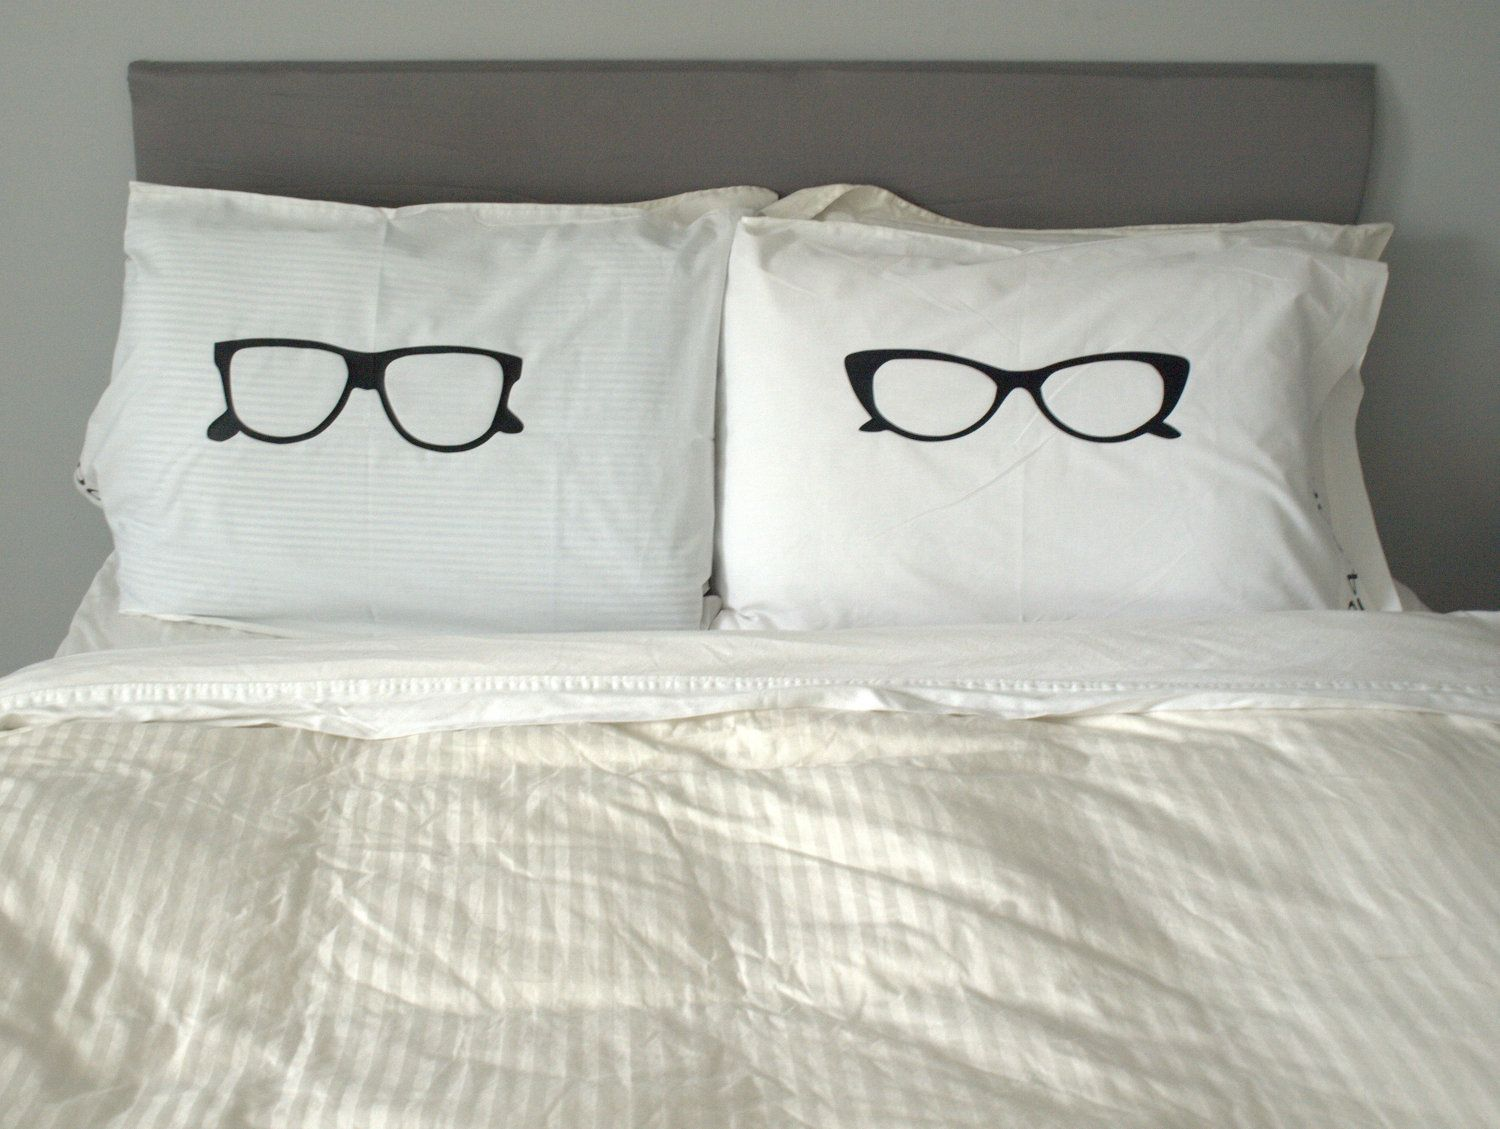 Uncategorized Unique Pillowcases his and hers pillows cool pillow cases glasses unique case set